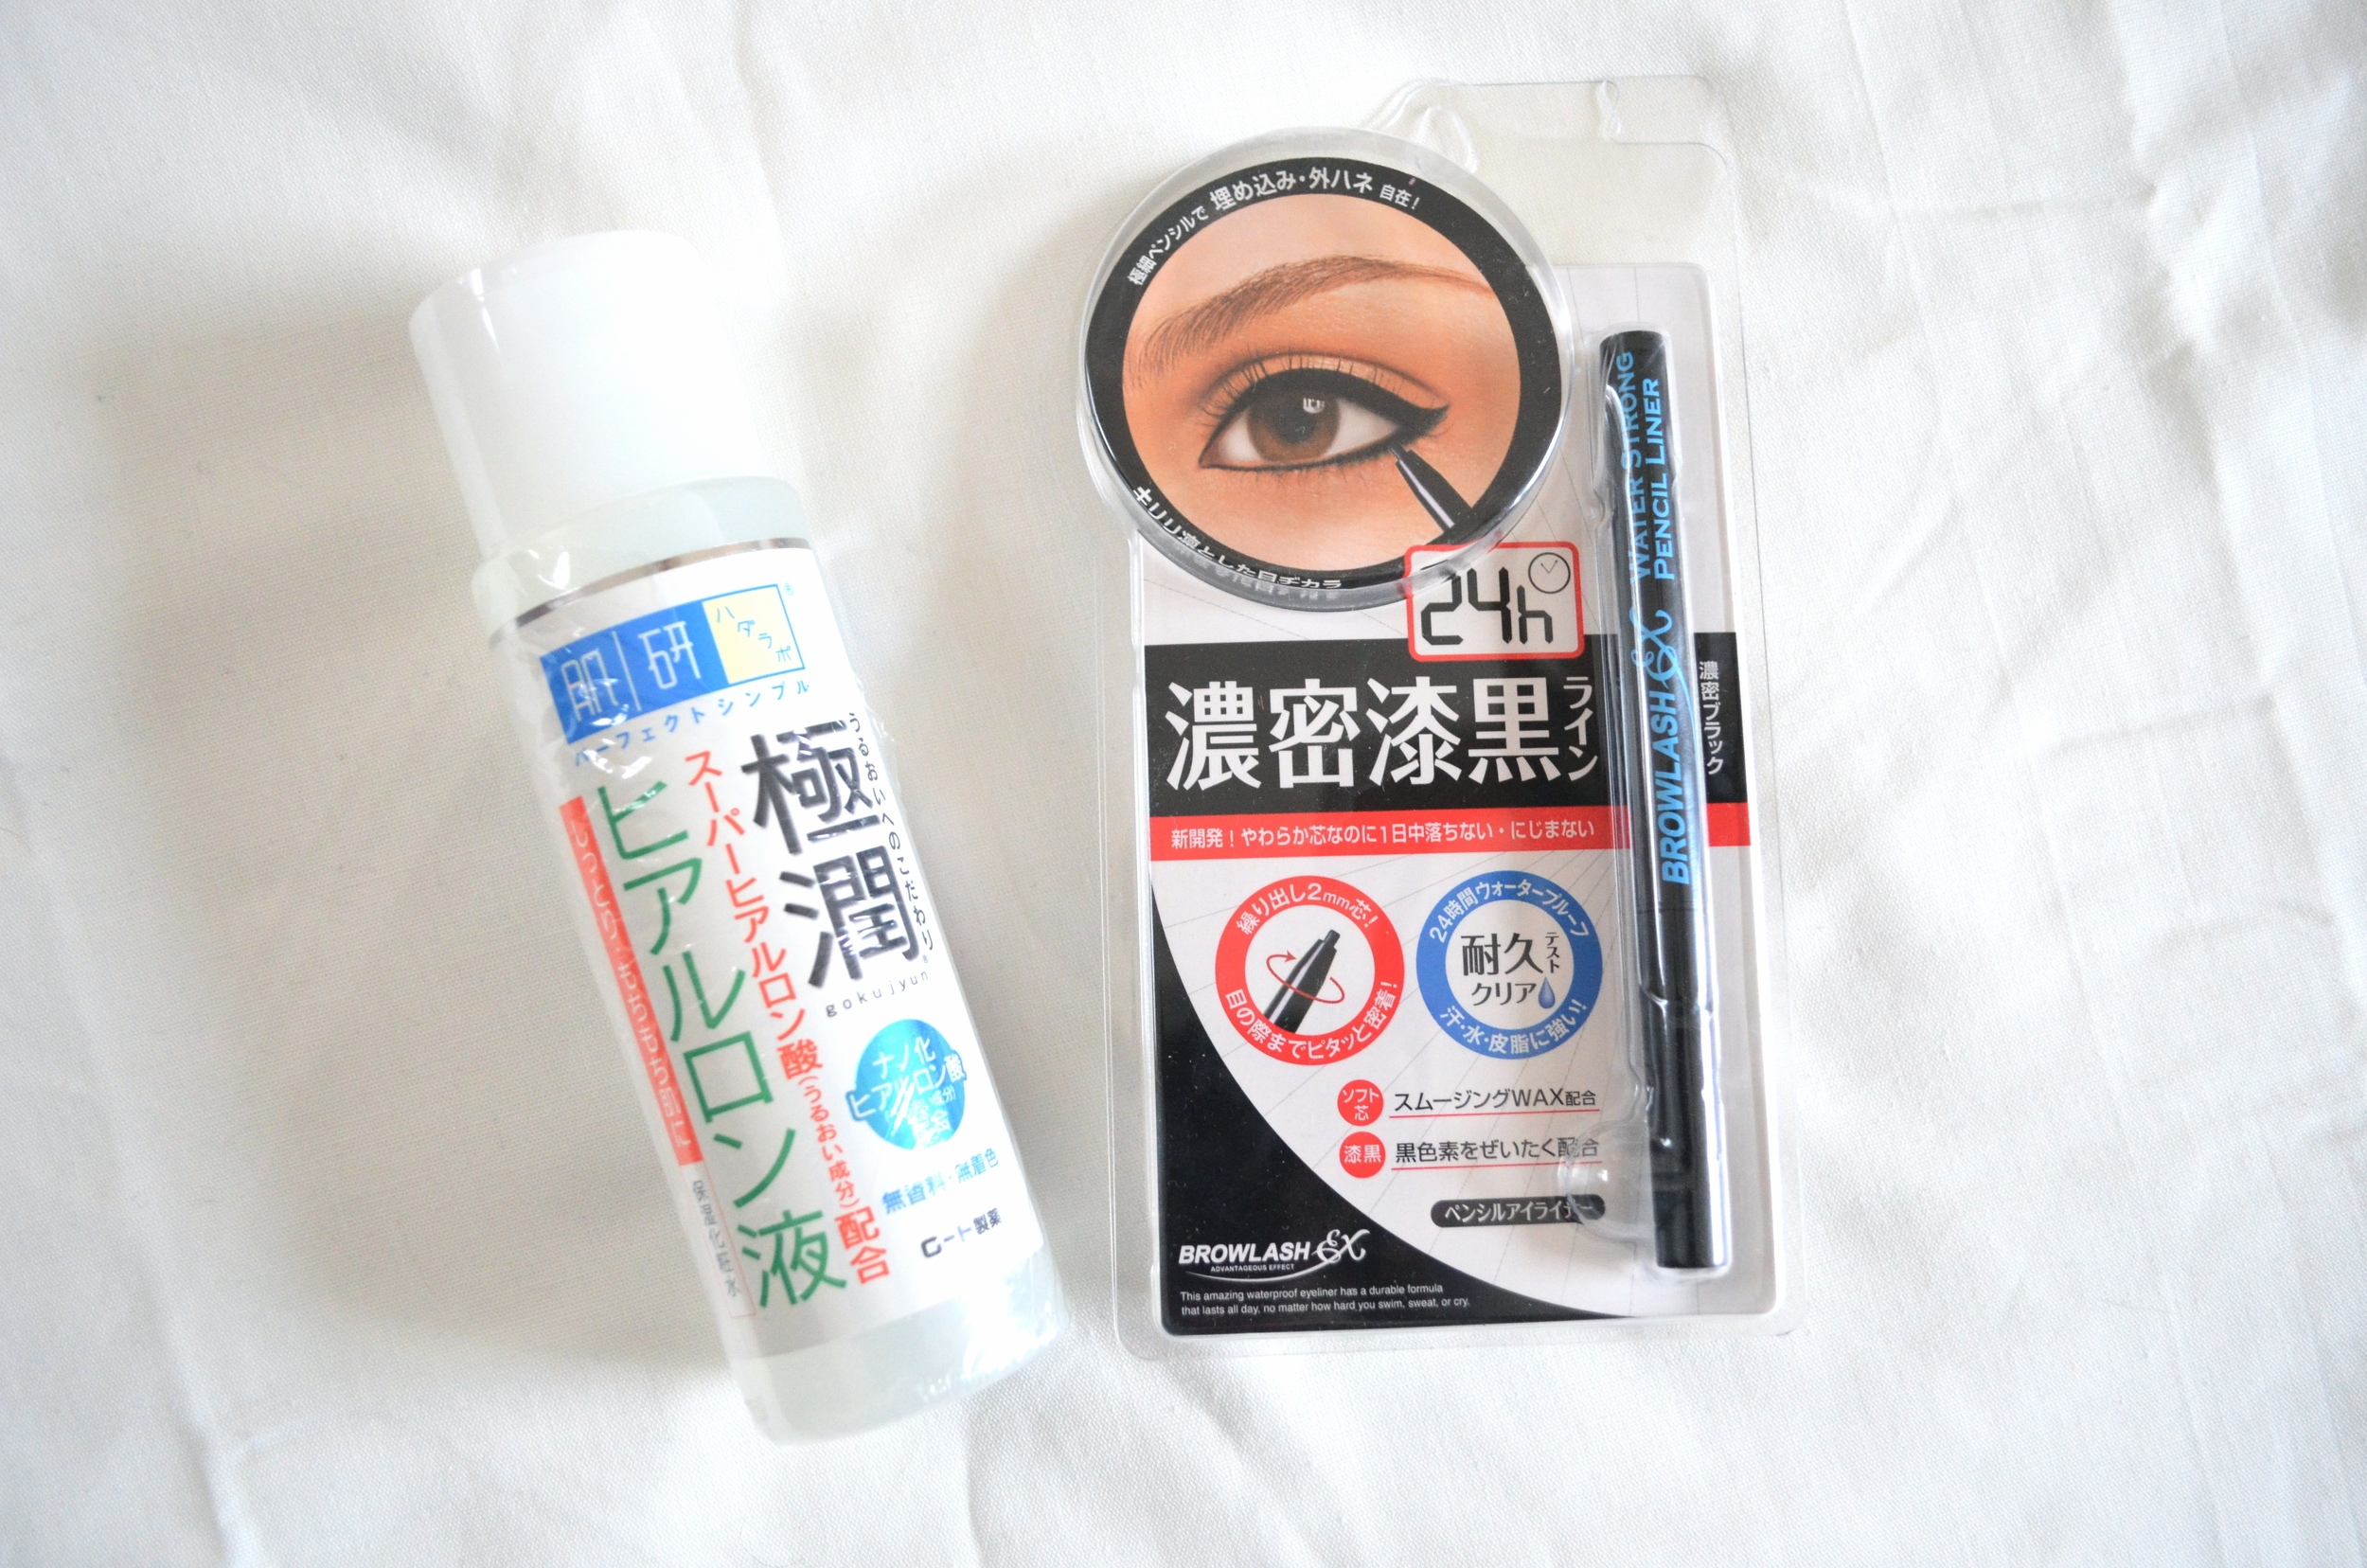 hada labo hyaluronic lotion review, browlash ex 24hr water strong pencil liner review